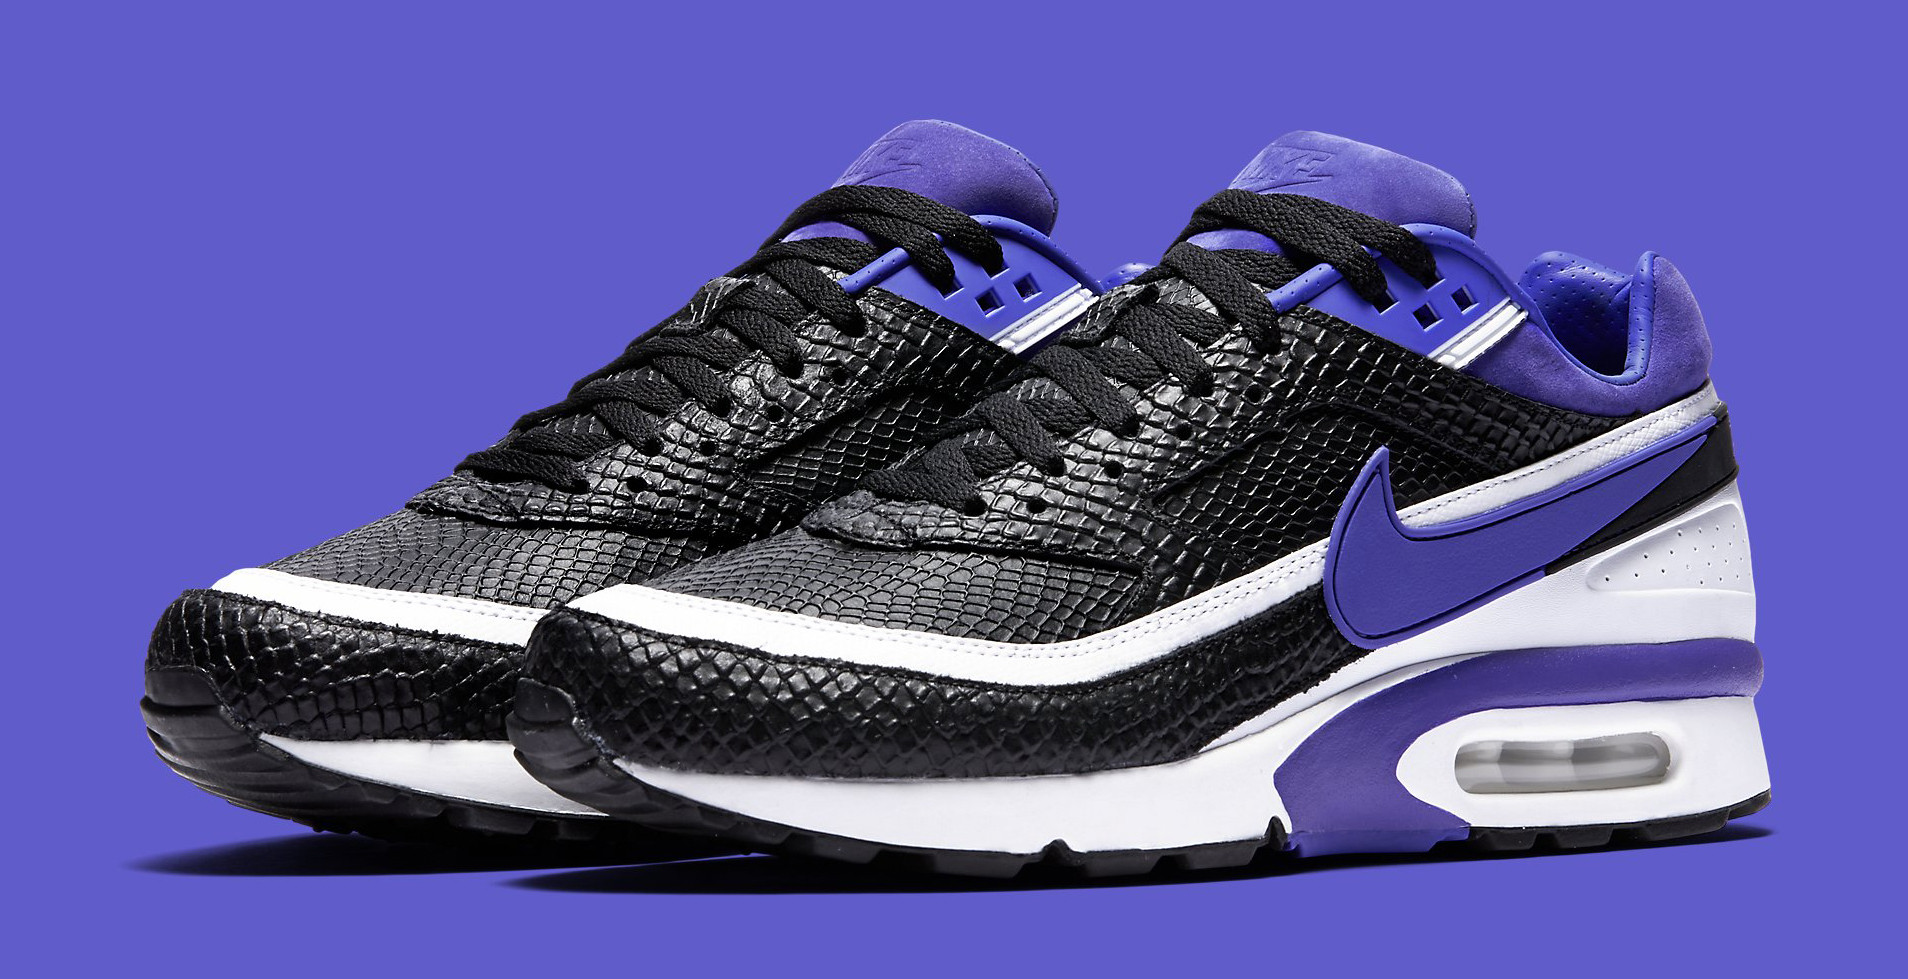 snake nike air classic bw persian violet